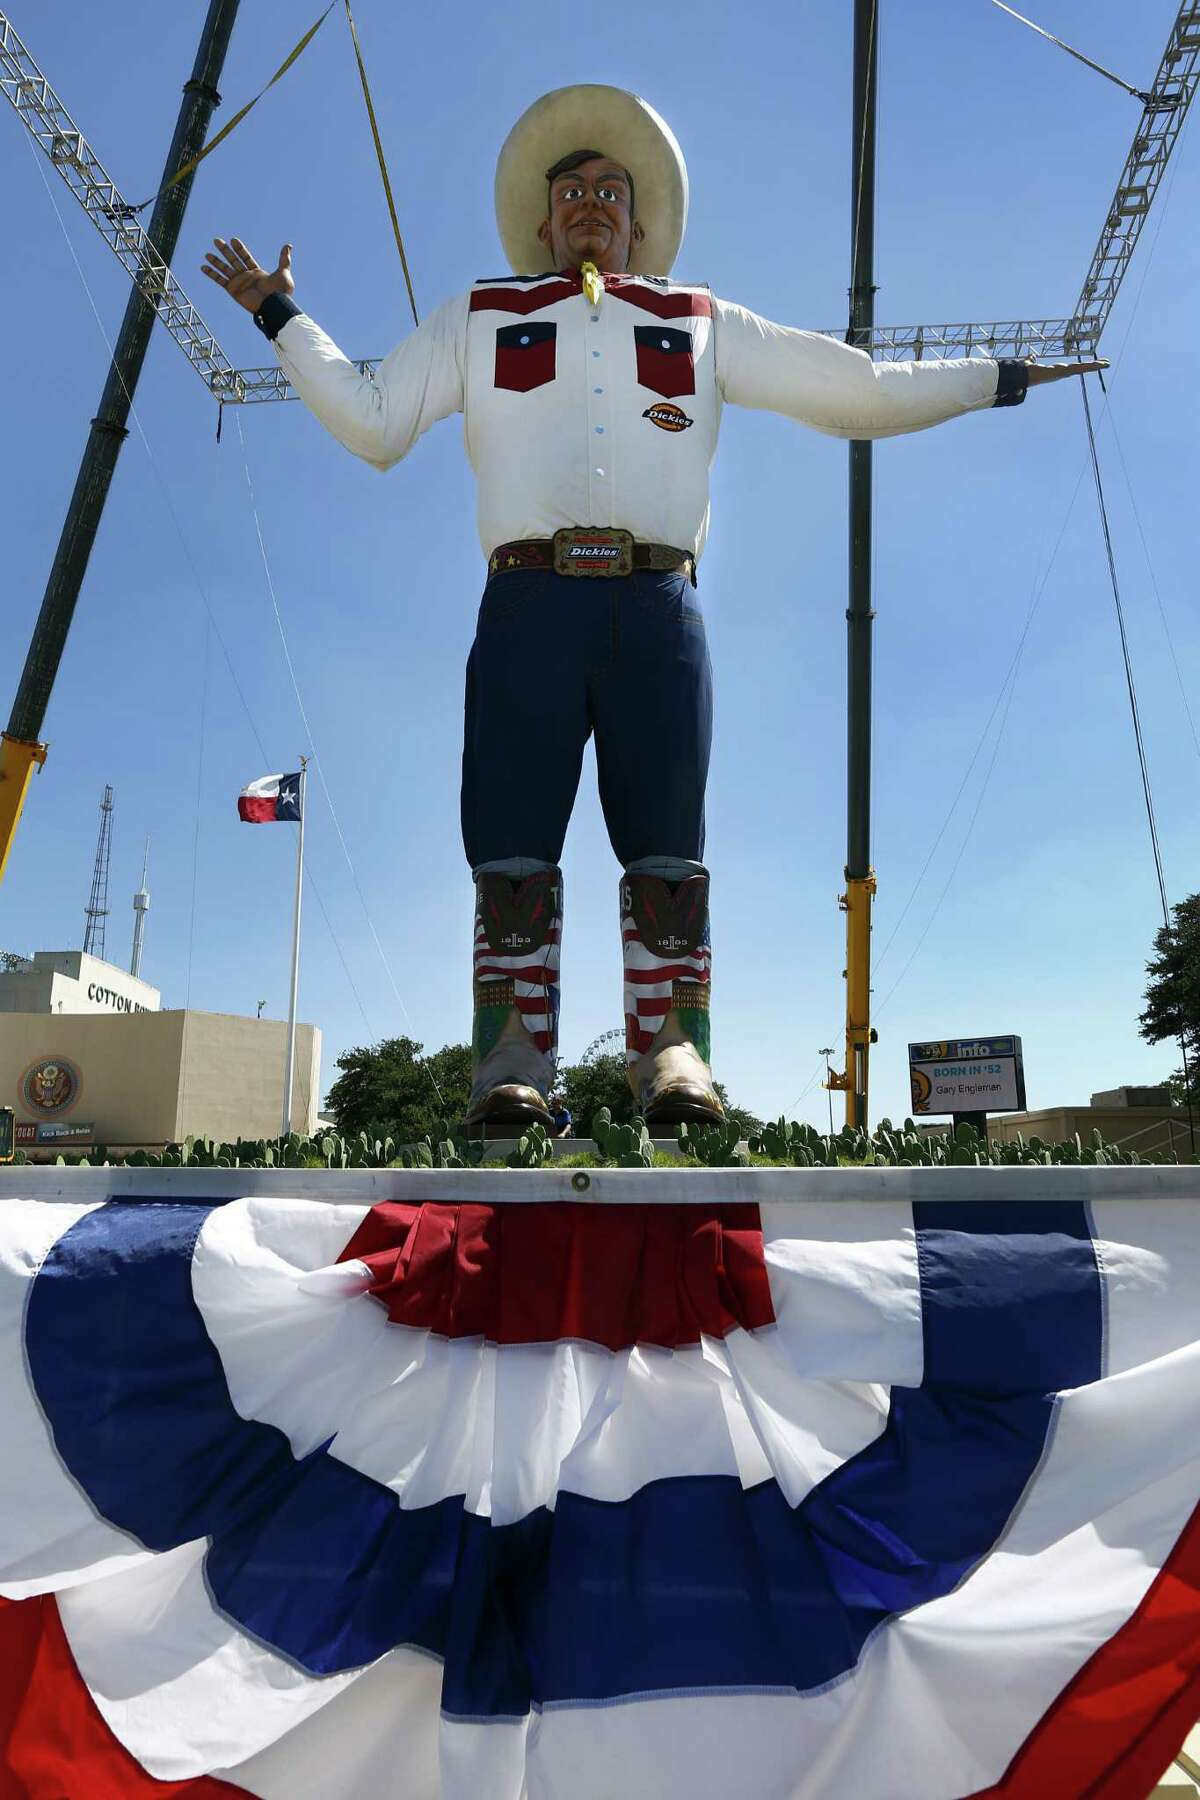 Because of high winds the curtain was dropped and the new Big Tex was revealed to the public a day earlier than expected at the State Fair of Texas, Thursday, September 26, 2013. He was erected in the middle of the night earlier today. (Tom Fox/Dallas Morning News/MCT)